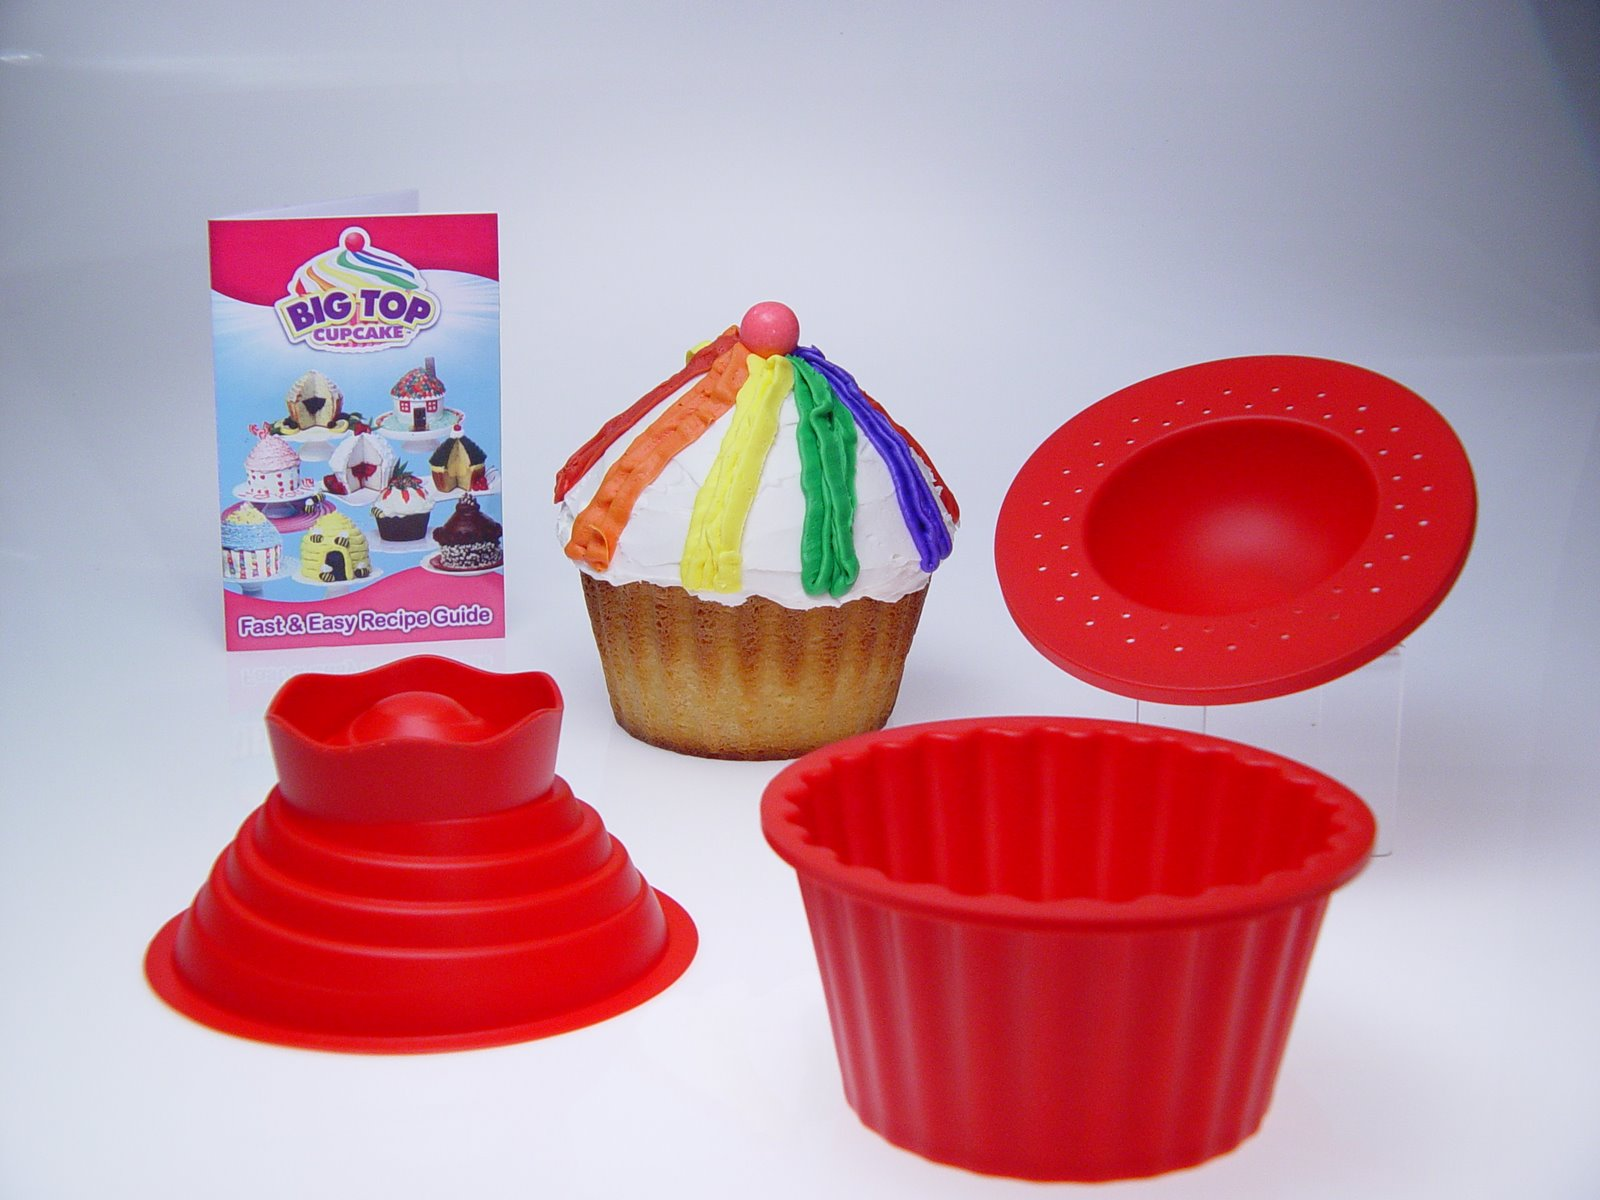 ENDED~~Calling All Bakers! Big Top Cupcake Giveaway Our ...